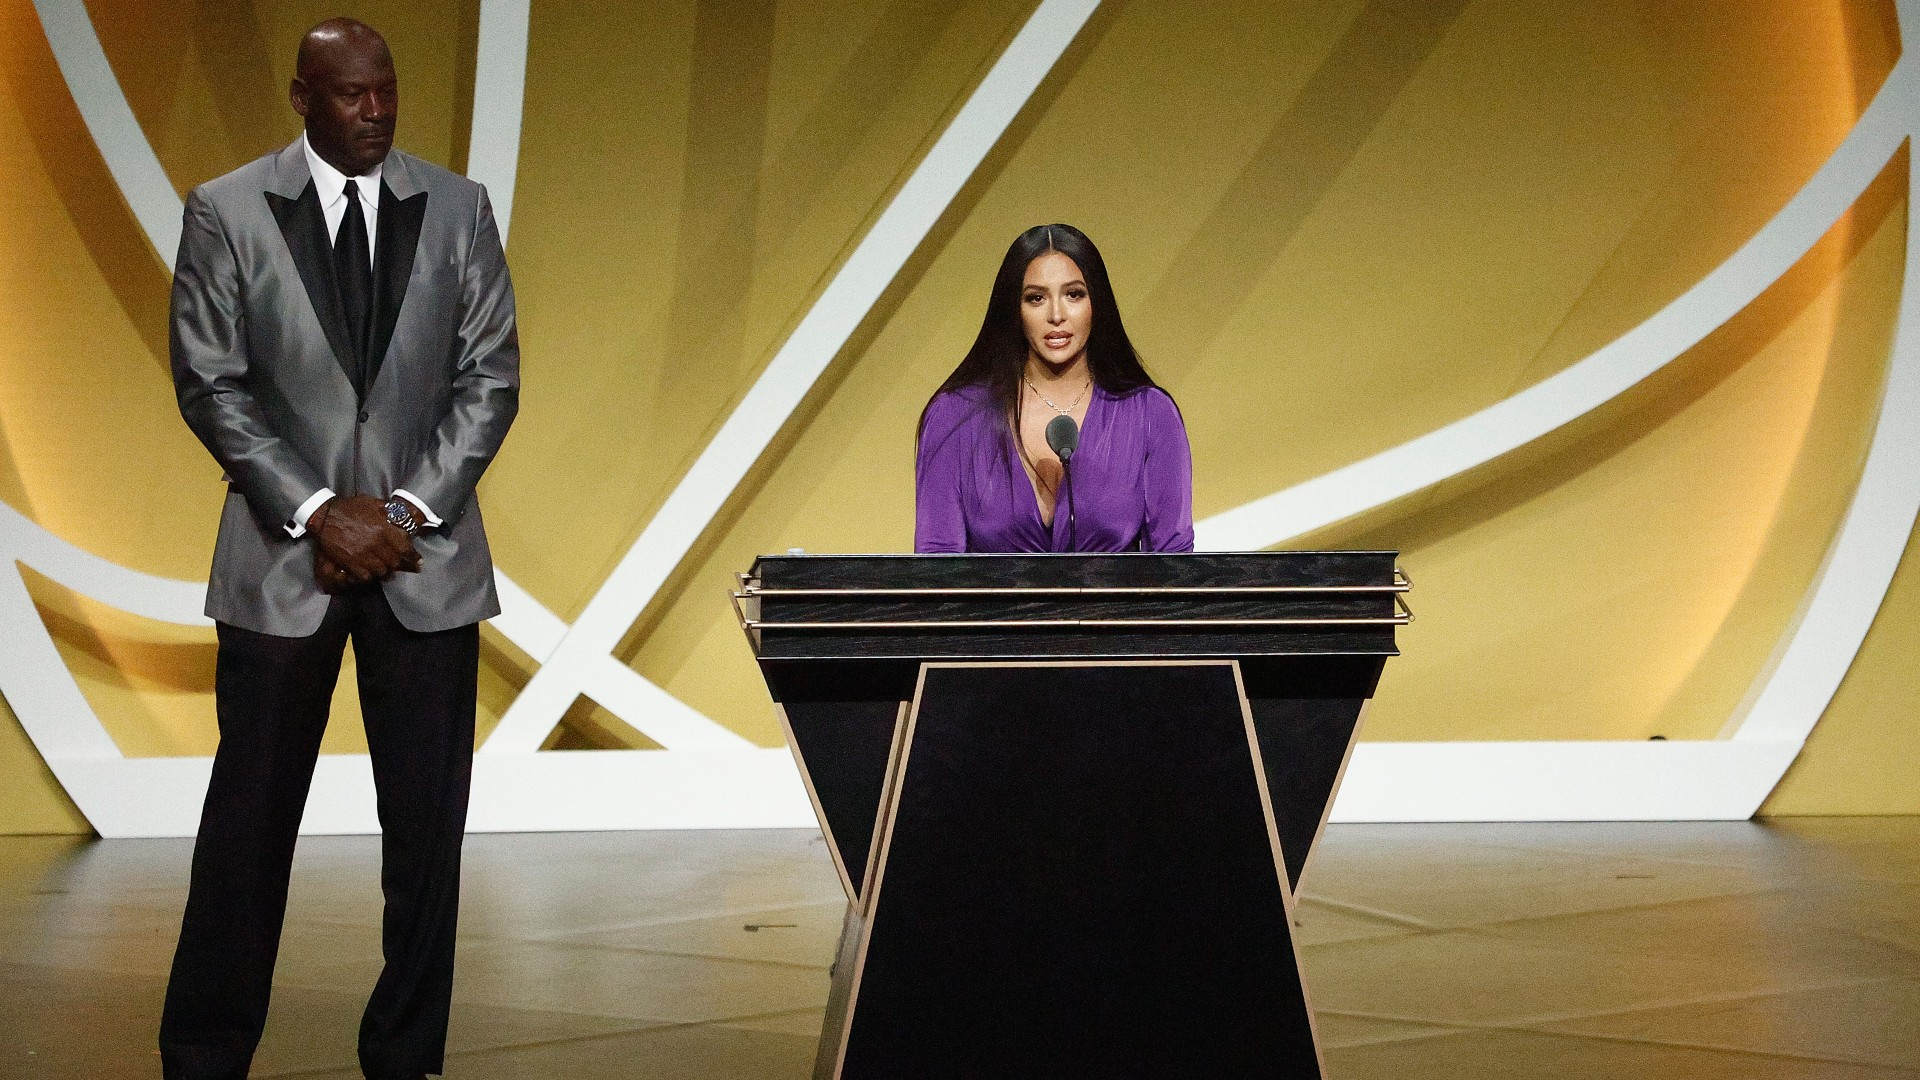 Watch Vanessa Bryant's full Hall of Fame speech honoring Kobe Bryant: 'I love you forever and always'